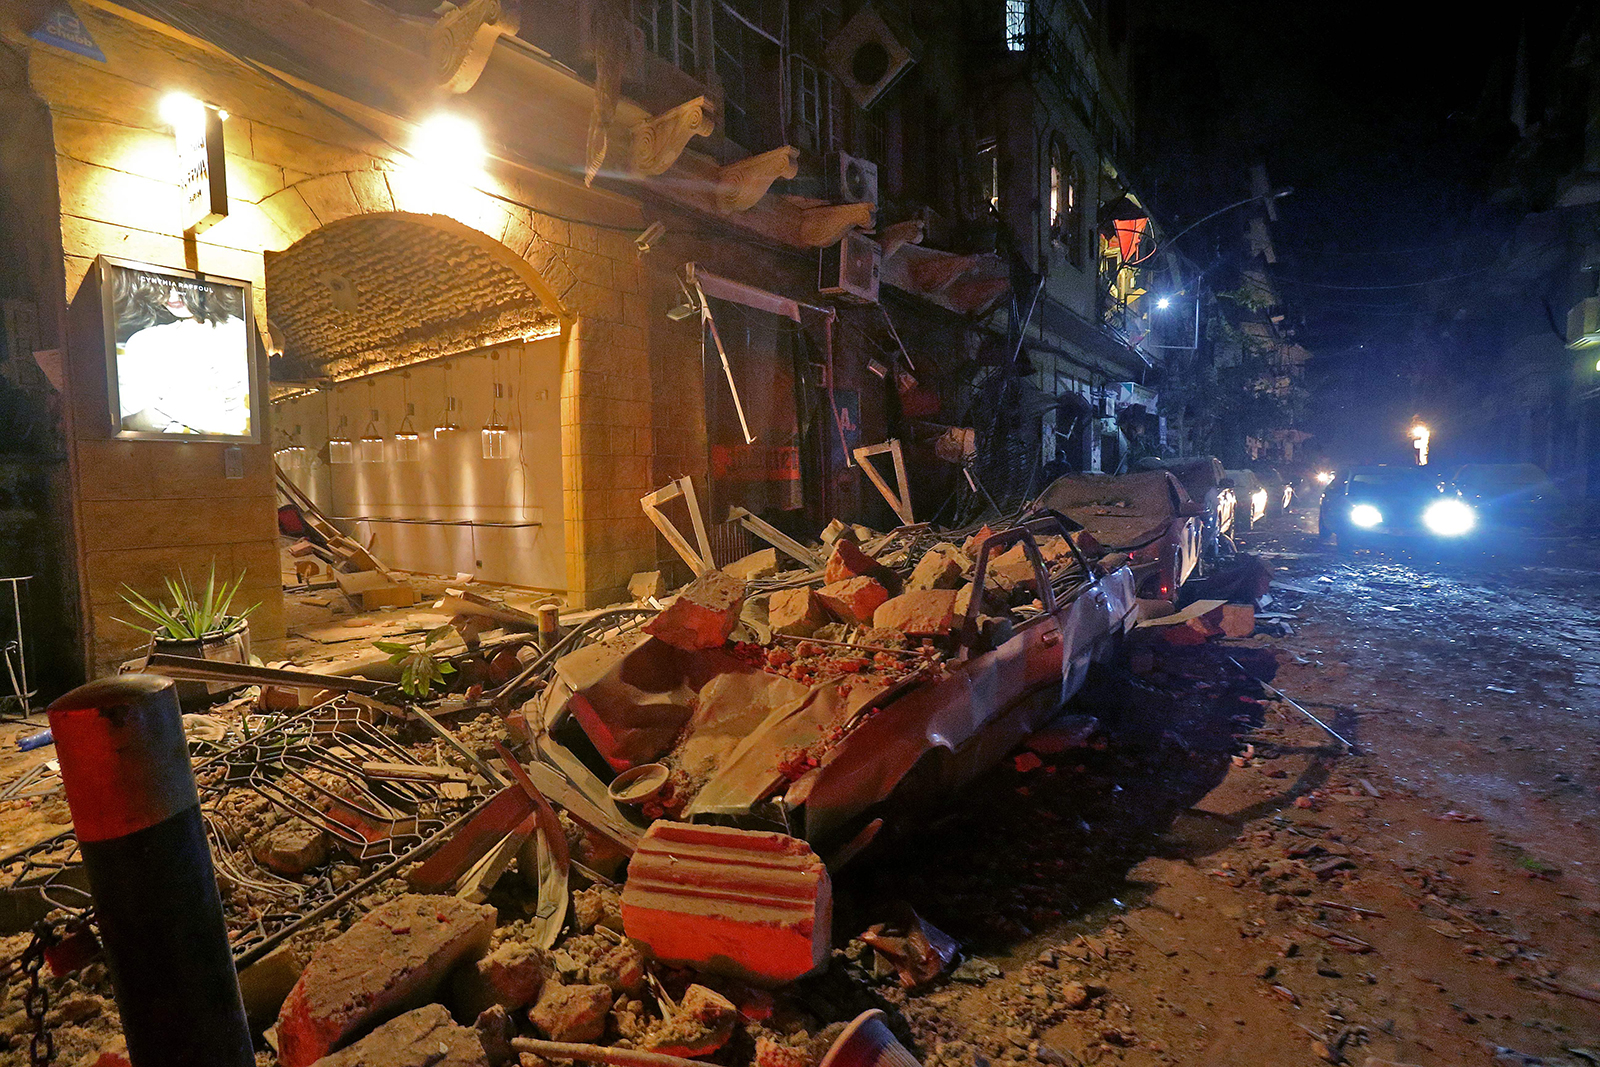 A view of destruction in the Gemmayzeh area in the center of Lebanon's capital Beirut, following a massive explosion on August 4.